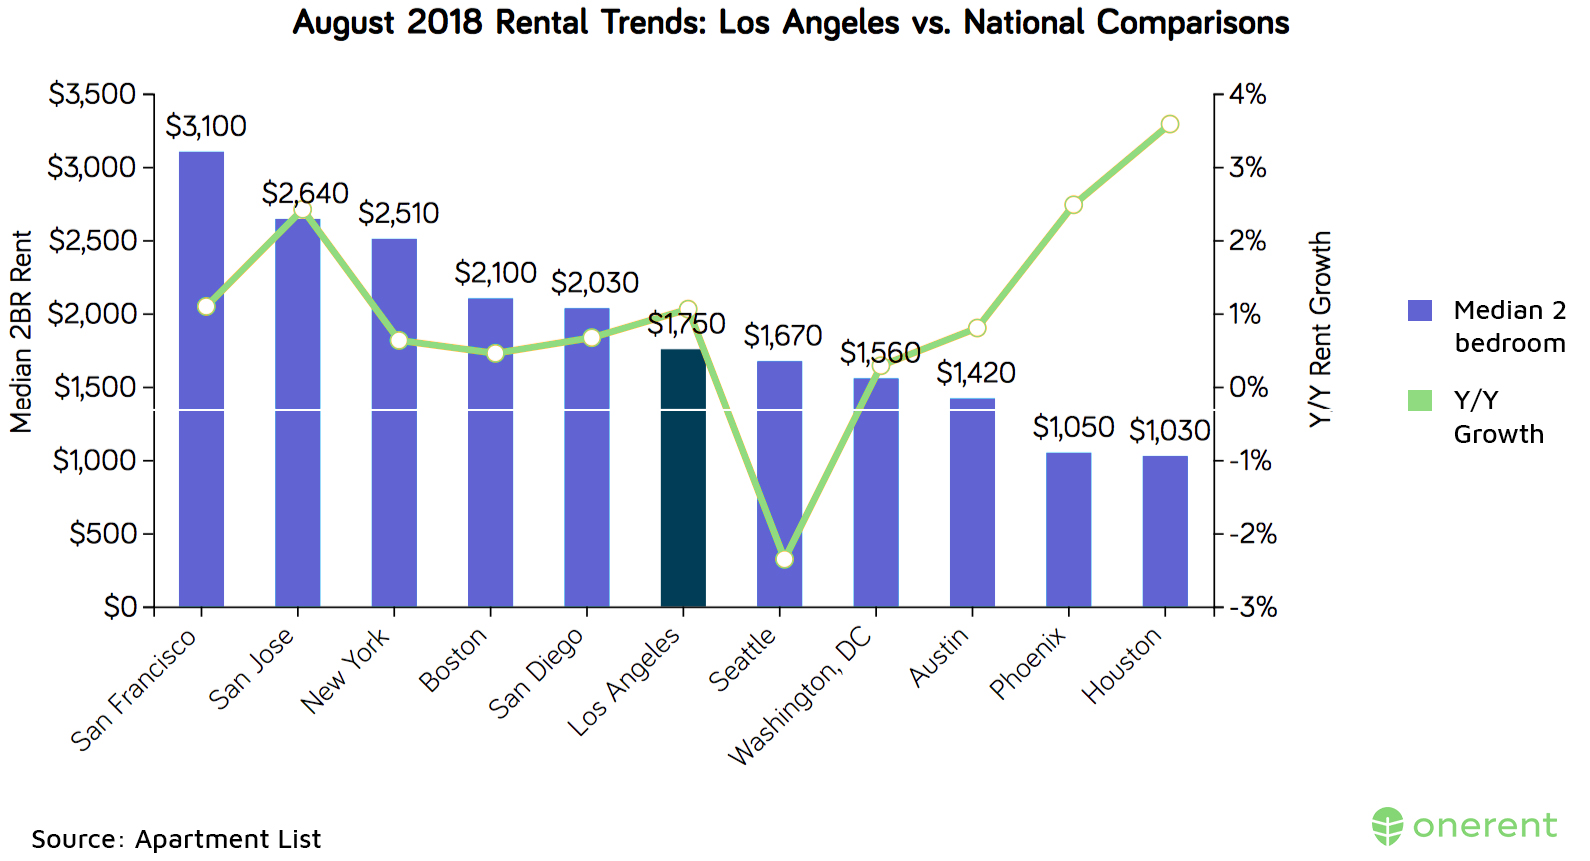 august-2018-rental-trends-los-angeles-vs-national-comparisons